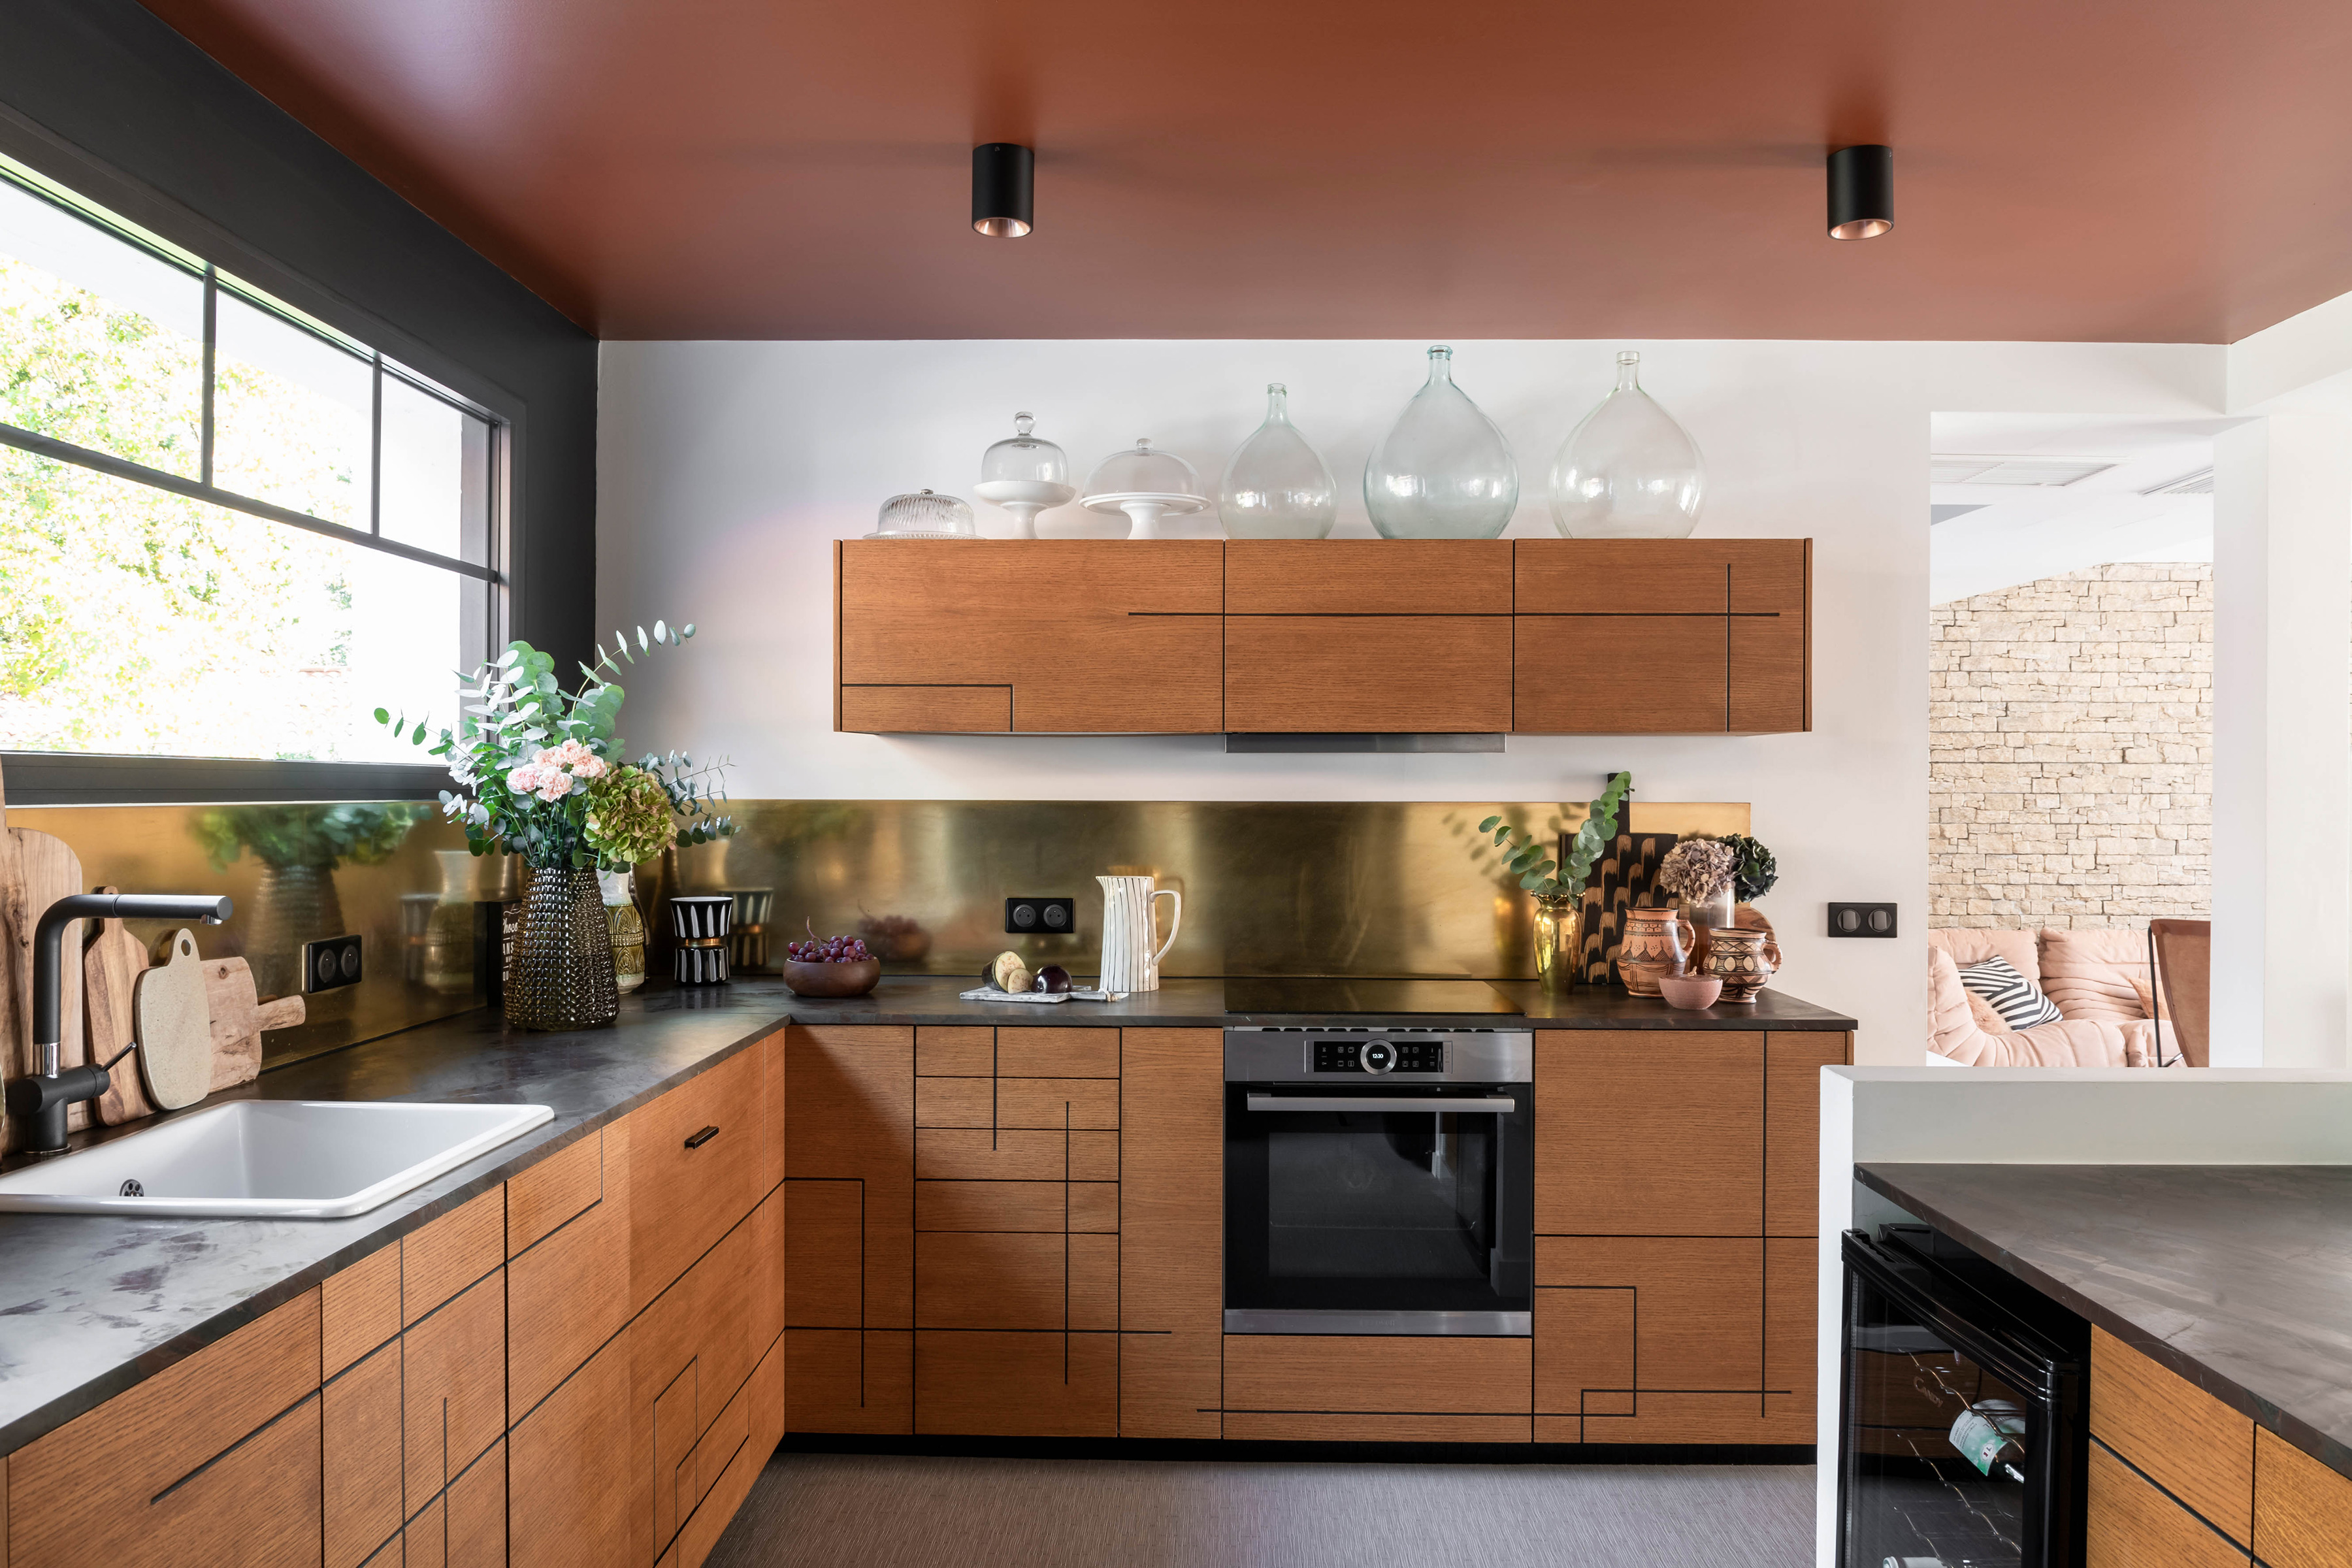 A modern kitchen with a clay colored ceiling.